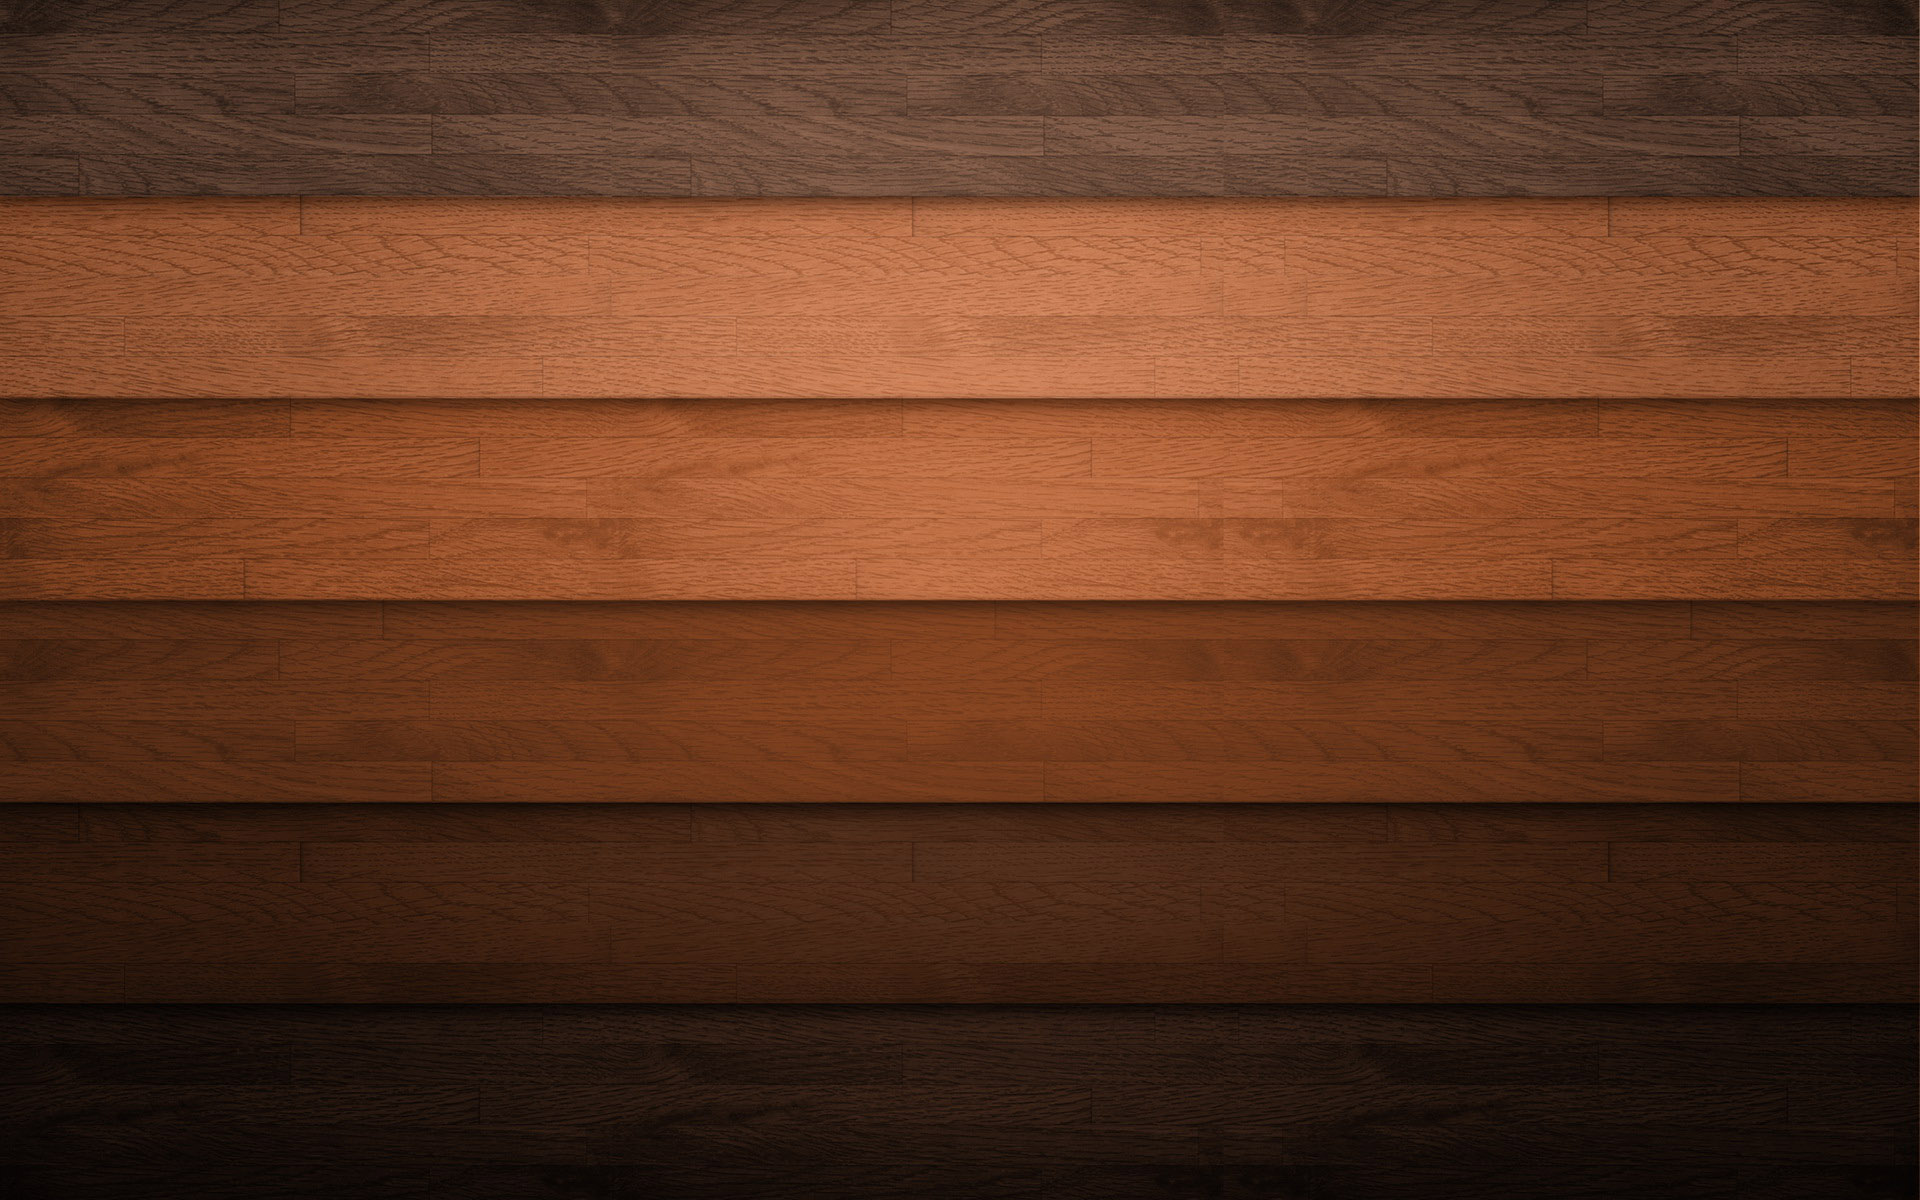 Wooden Textures for Designers (3)